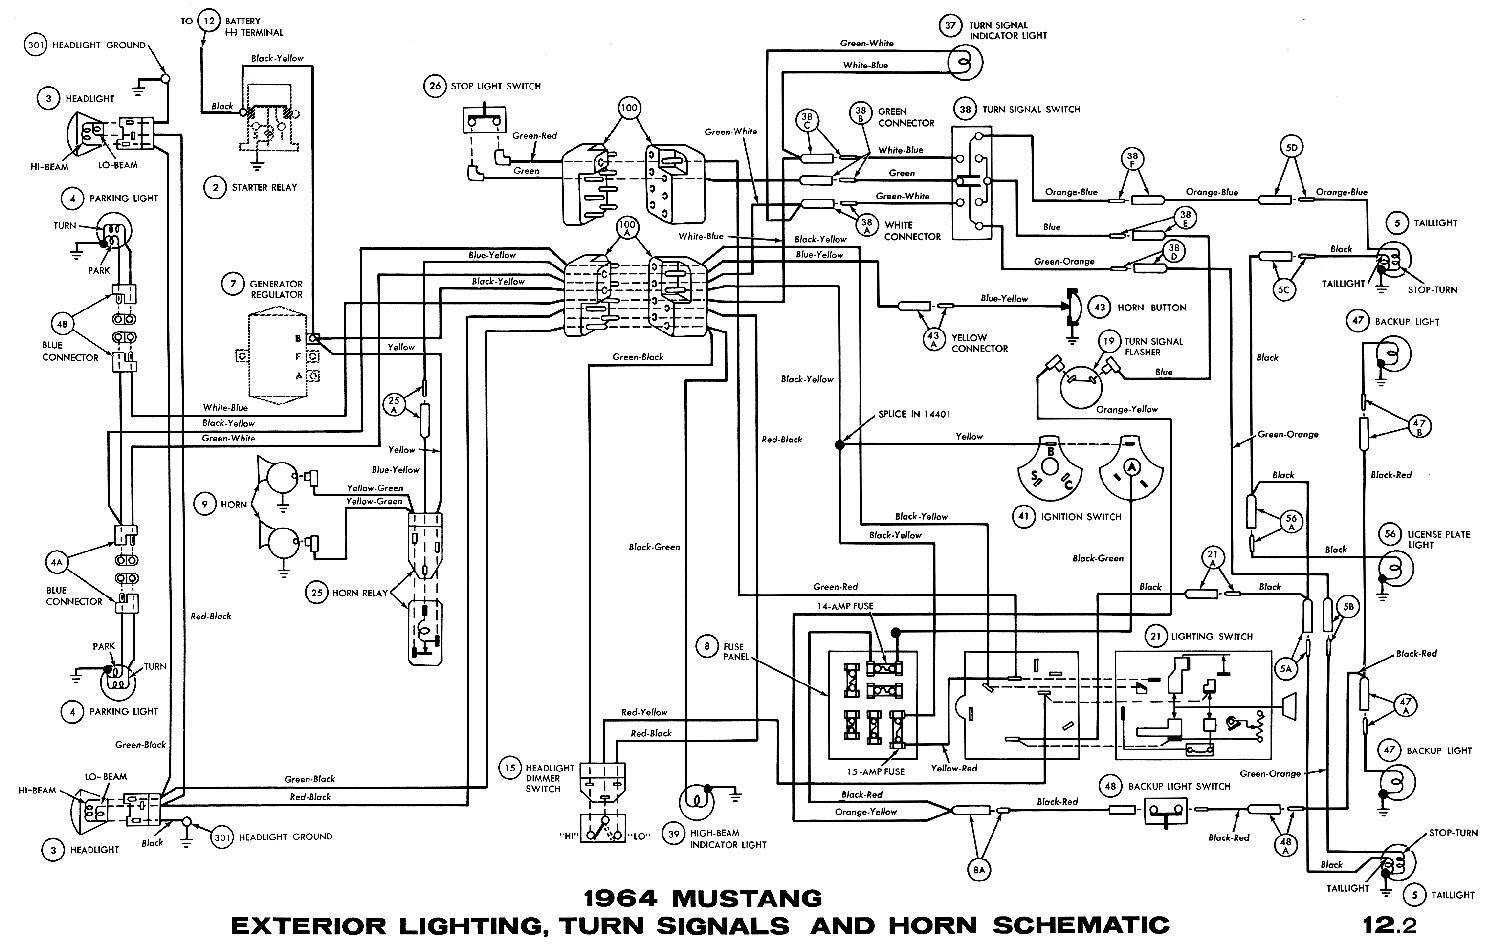 67 Mustang Dash Wiring Diagram Wiring Diagram For Garage Uk For Wiring Diagram Schematics